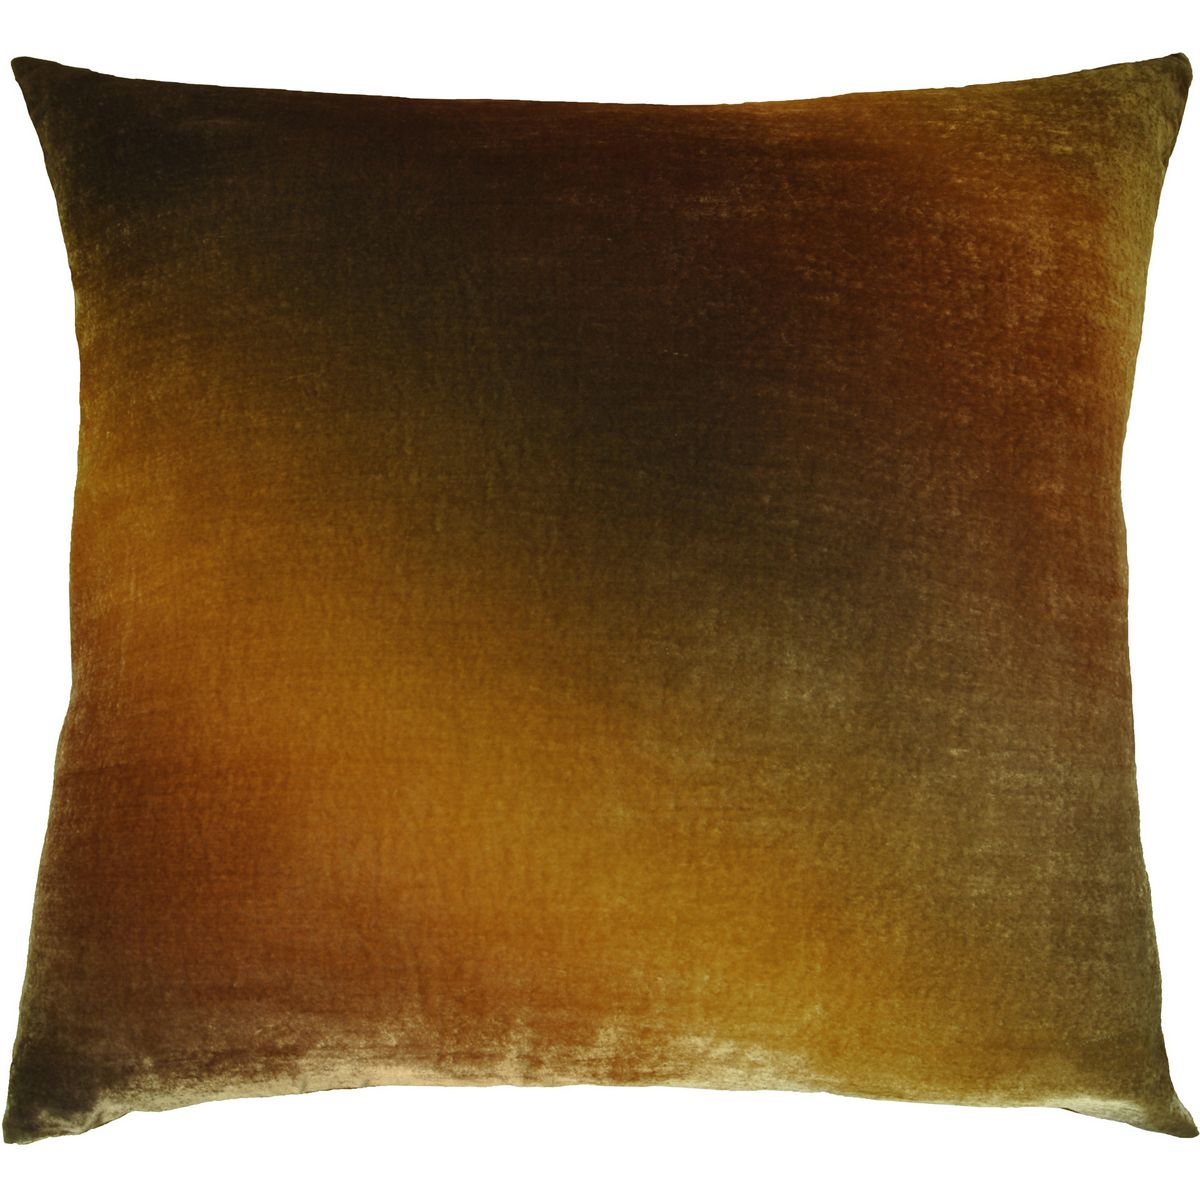 Uuu Kevin Obrien Studio Gradient Floor Pillow